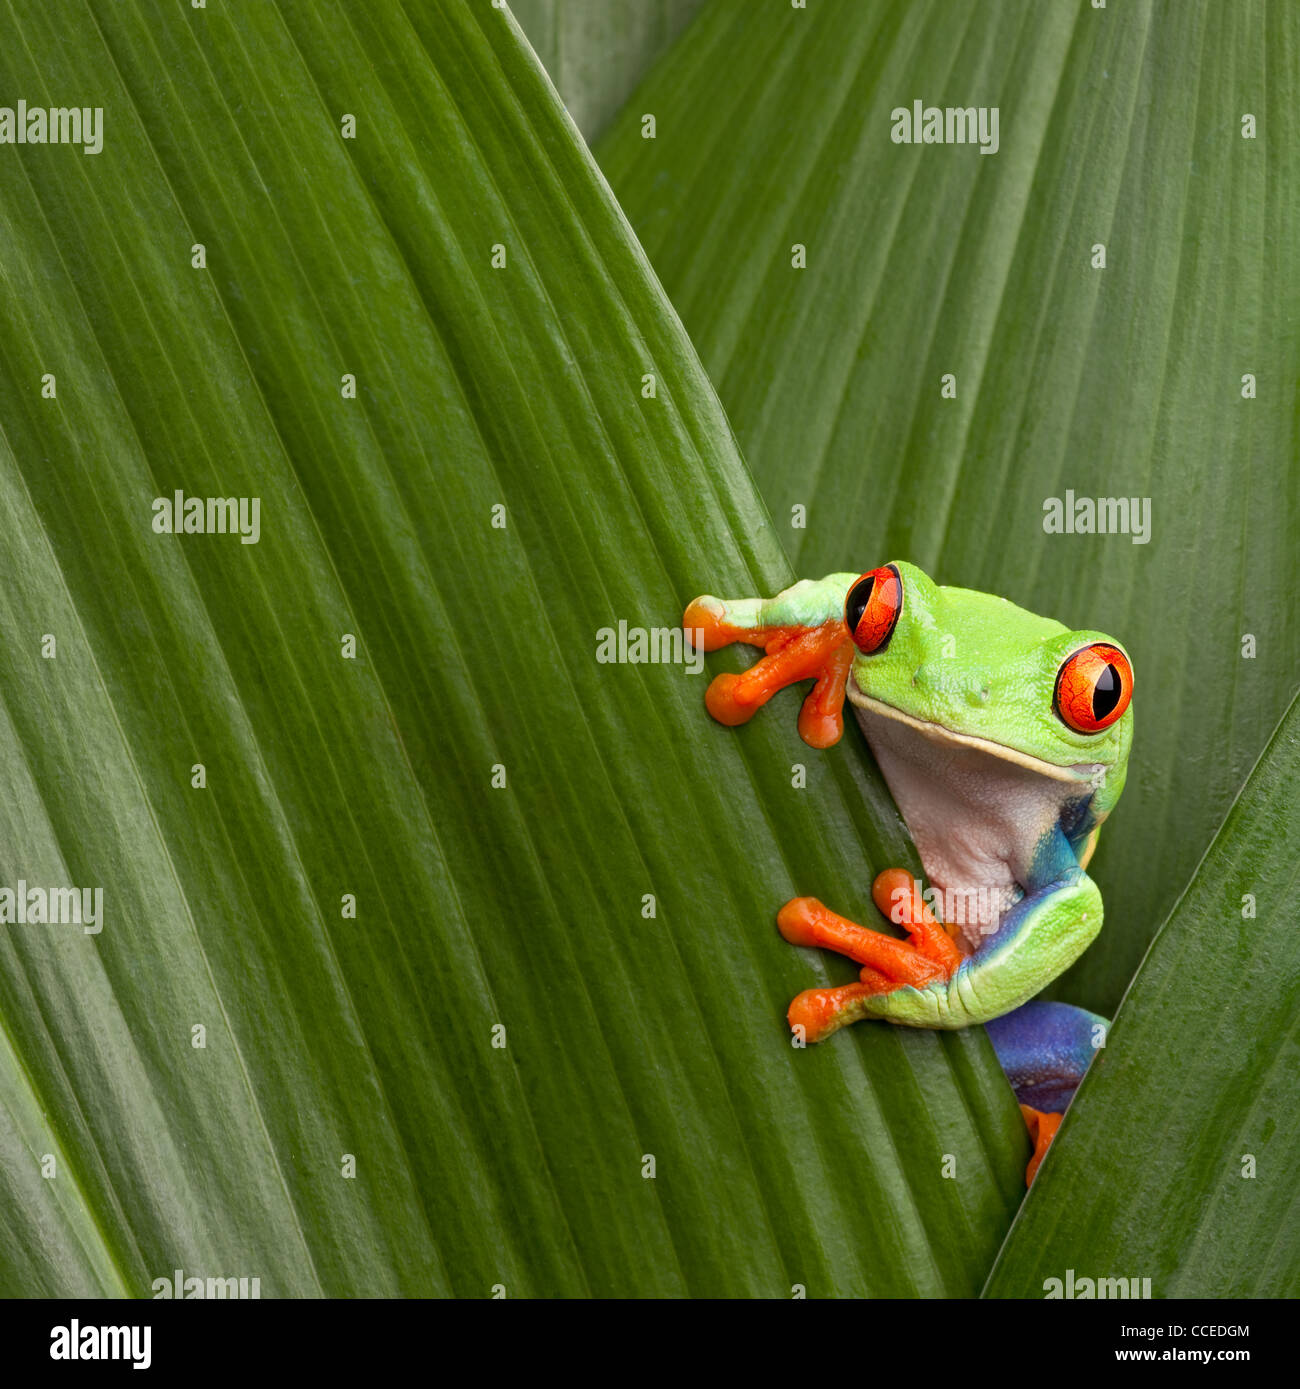 Red Eyed Tree Frog Agalichnis Callidrias Hiding In Green Leaf Stock Photo Alamy